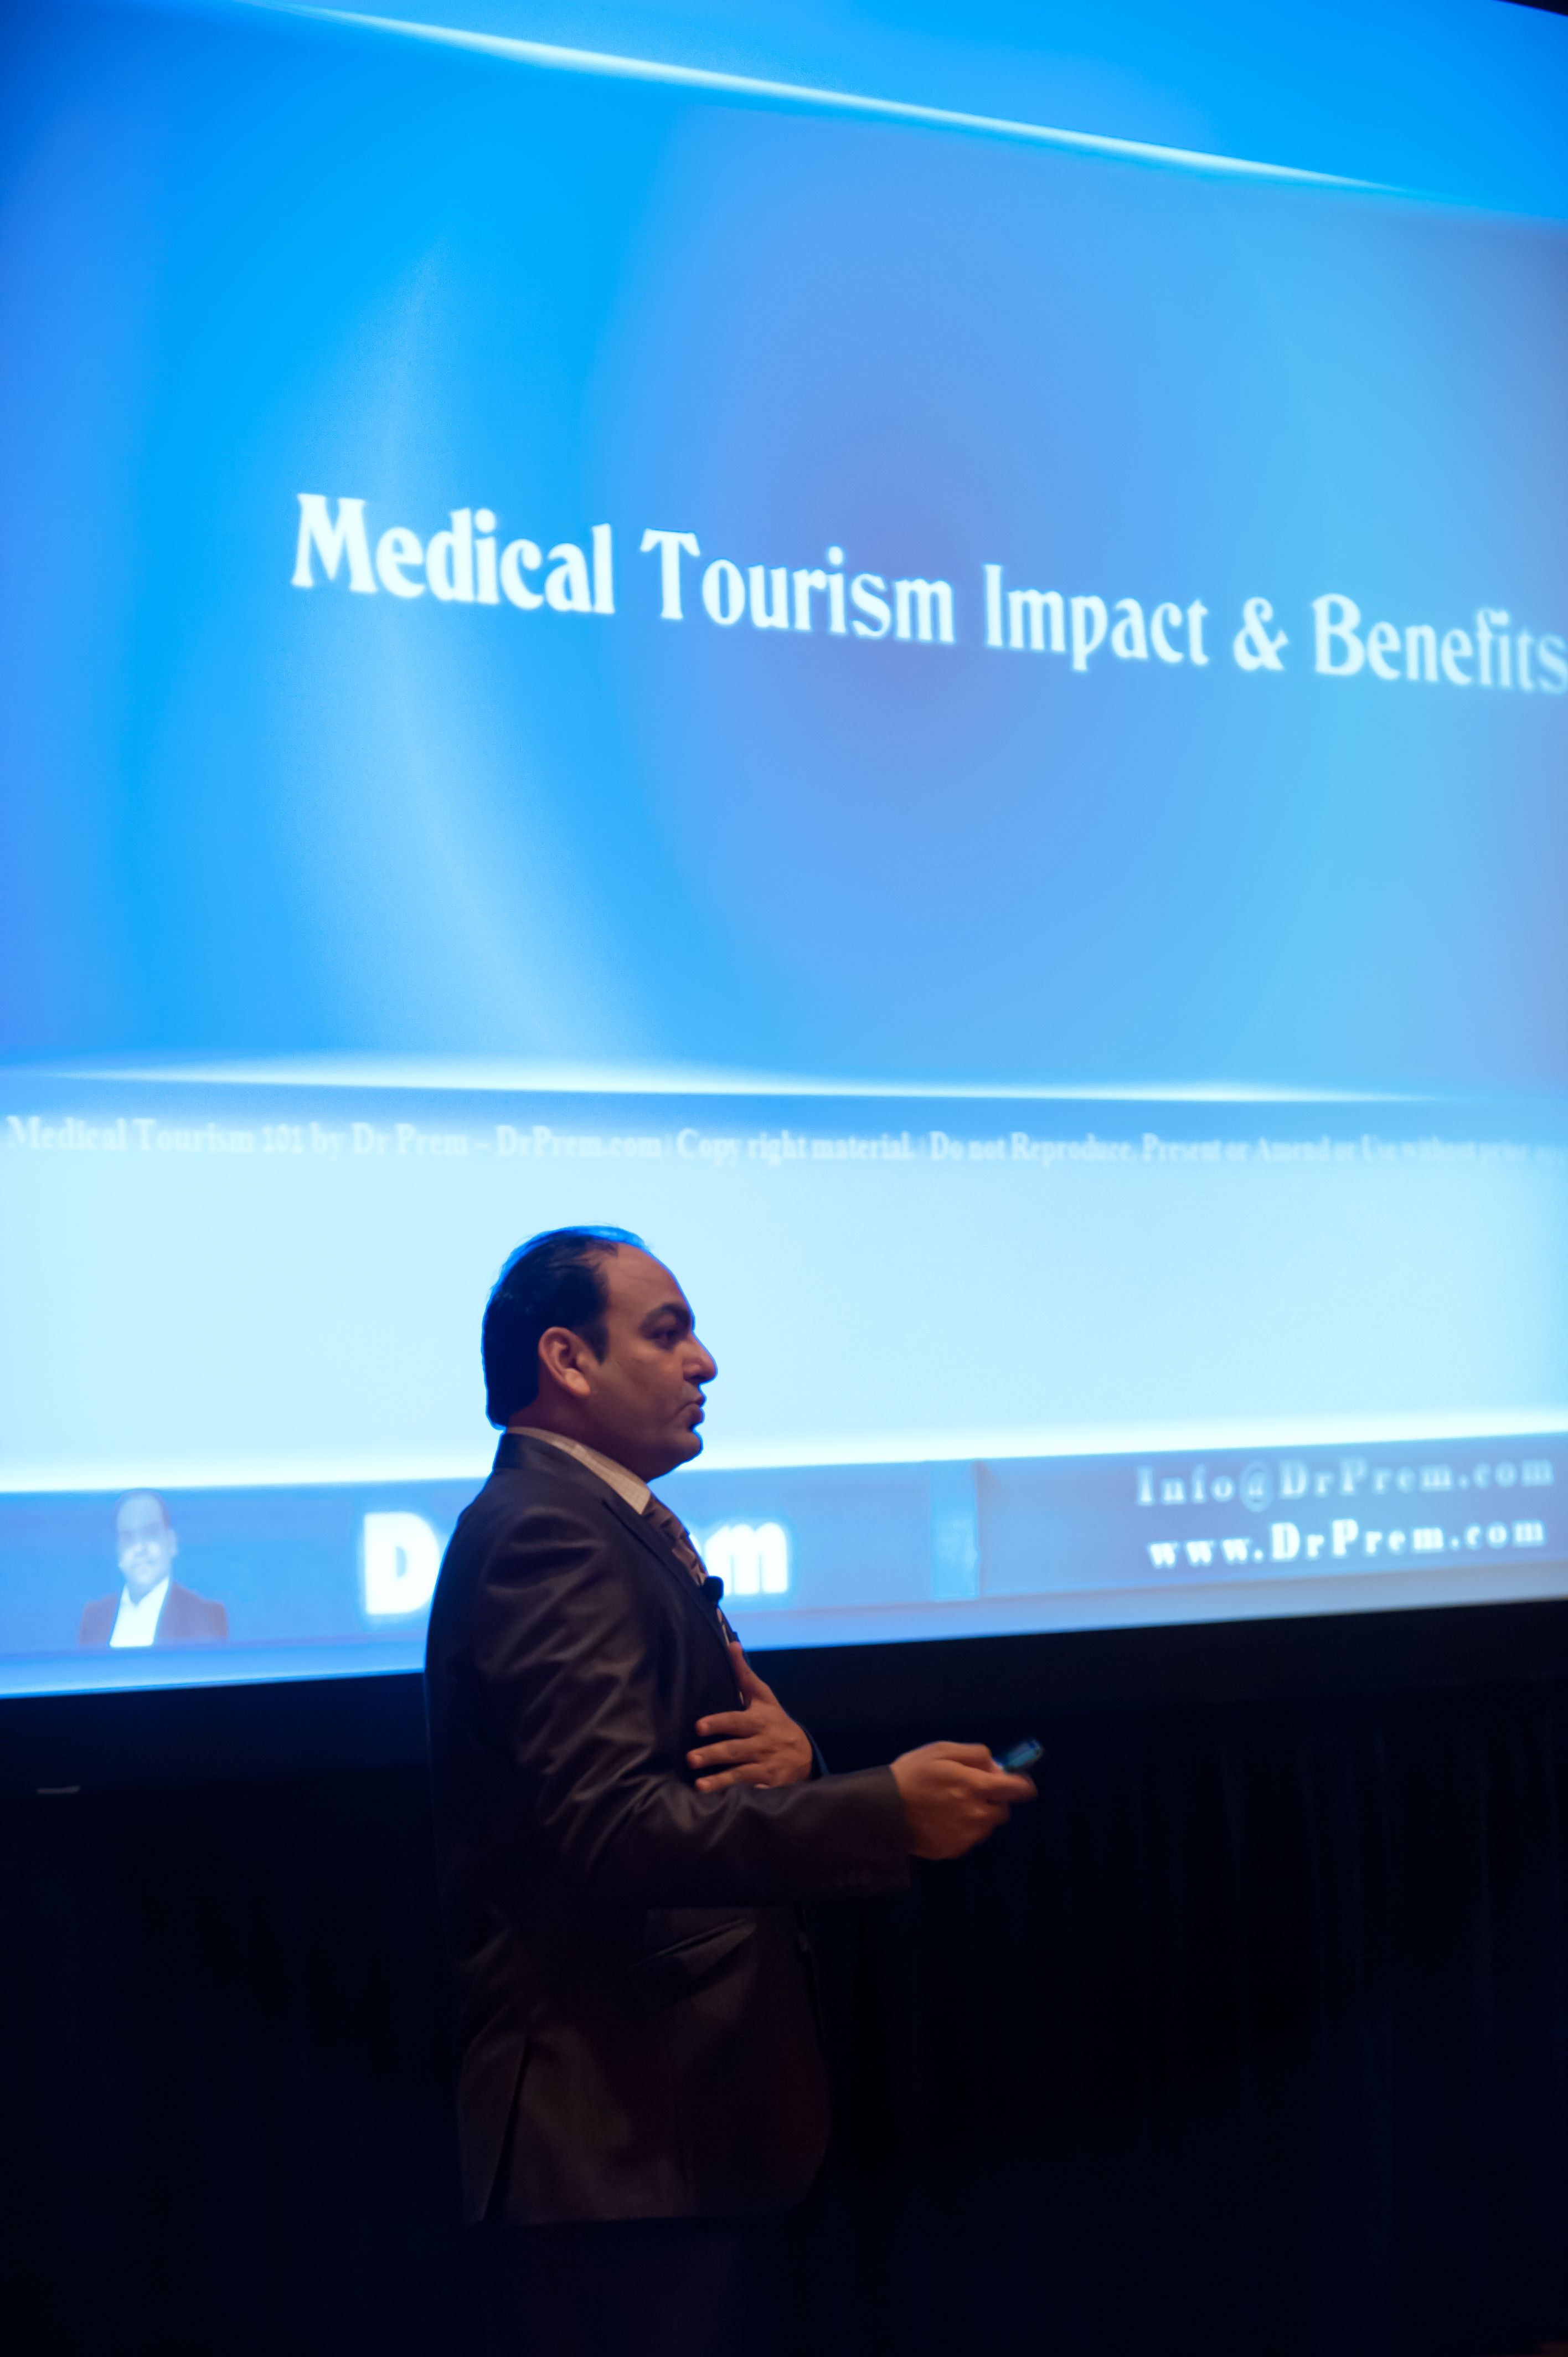 Medical tourism health tourism conferences and events